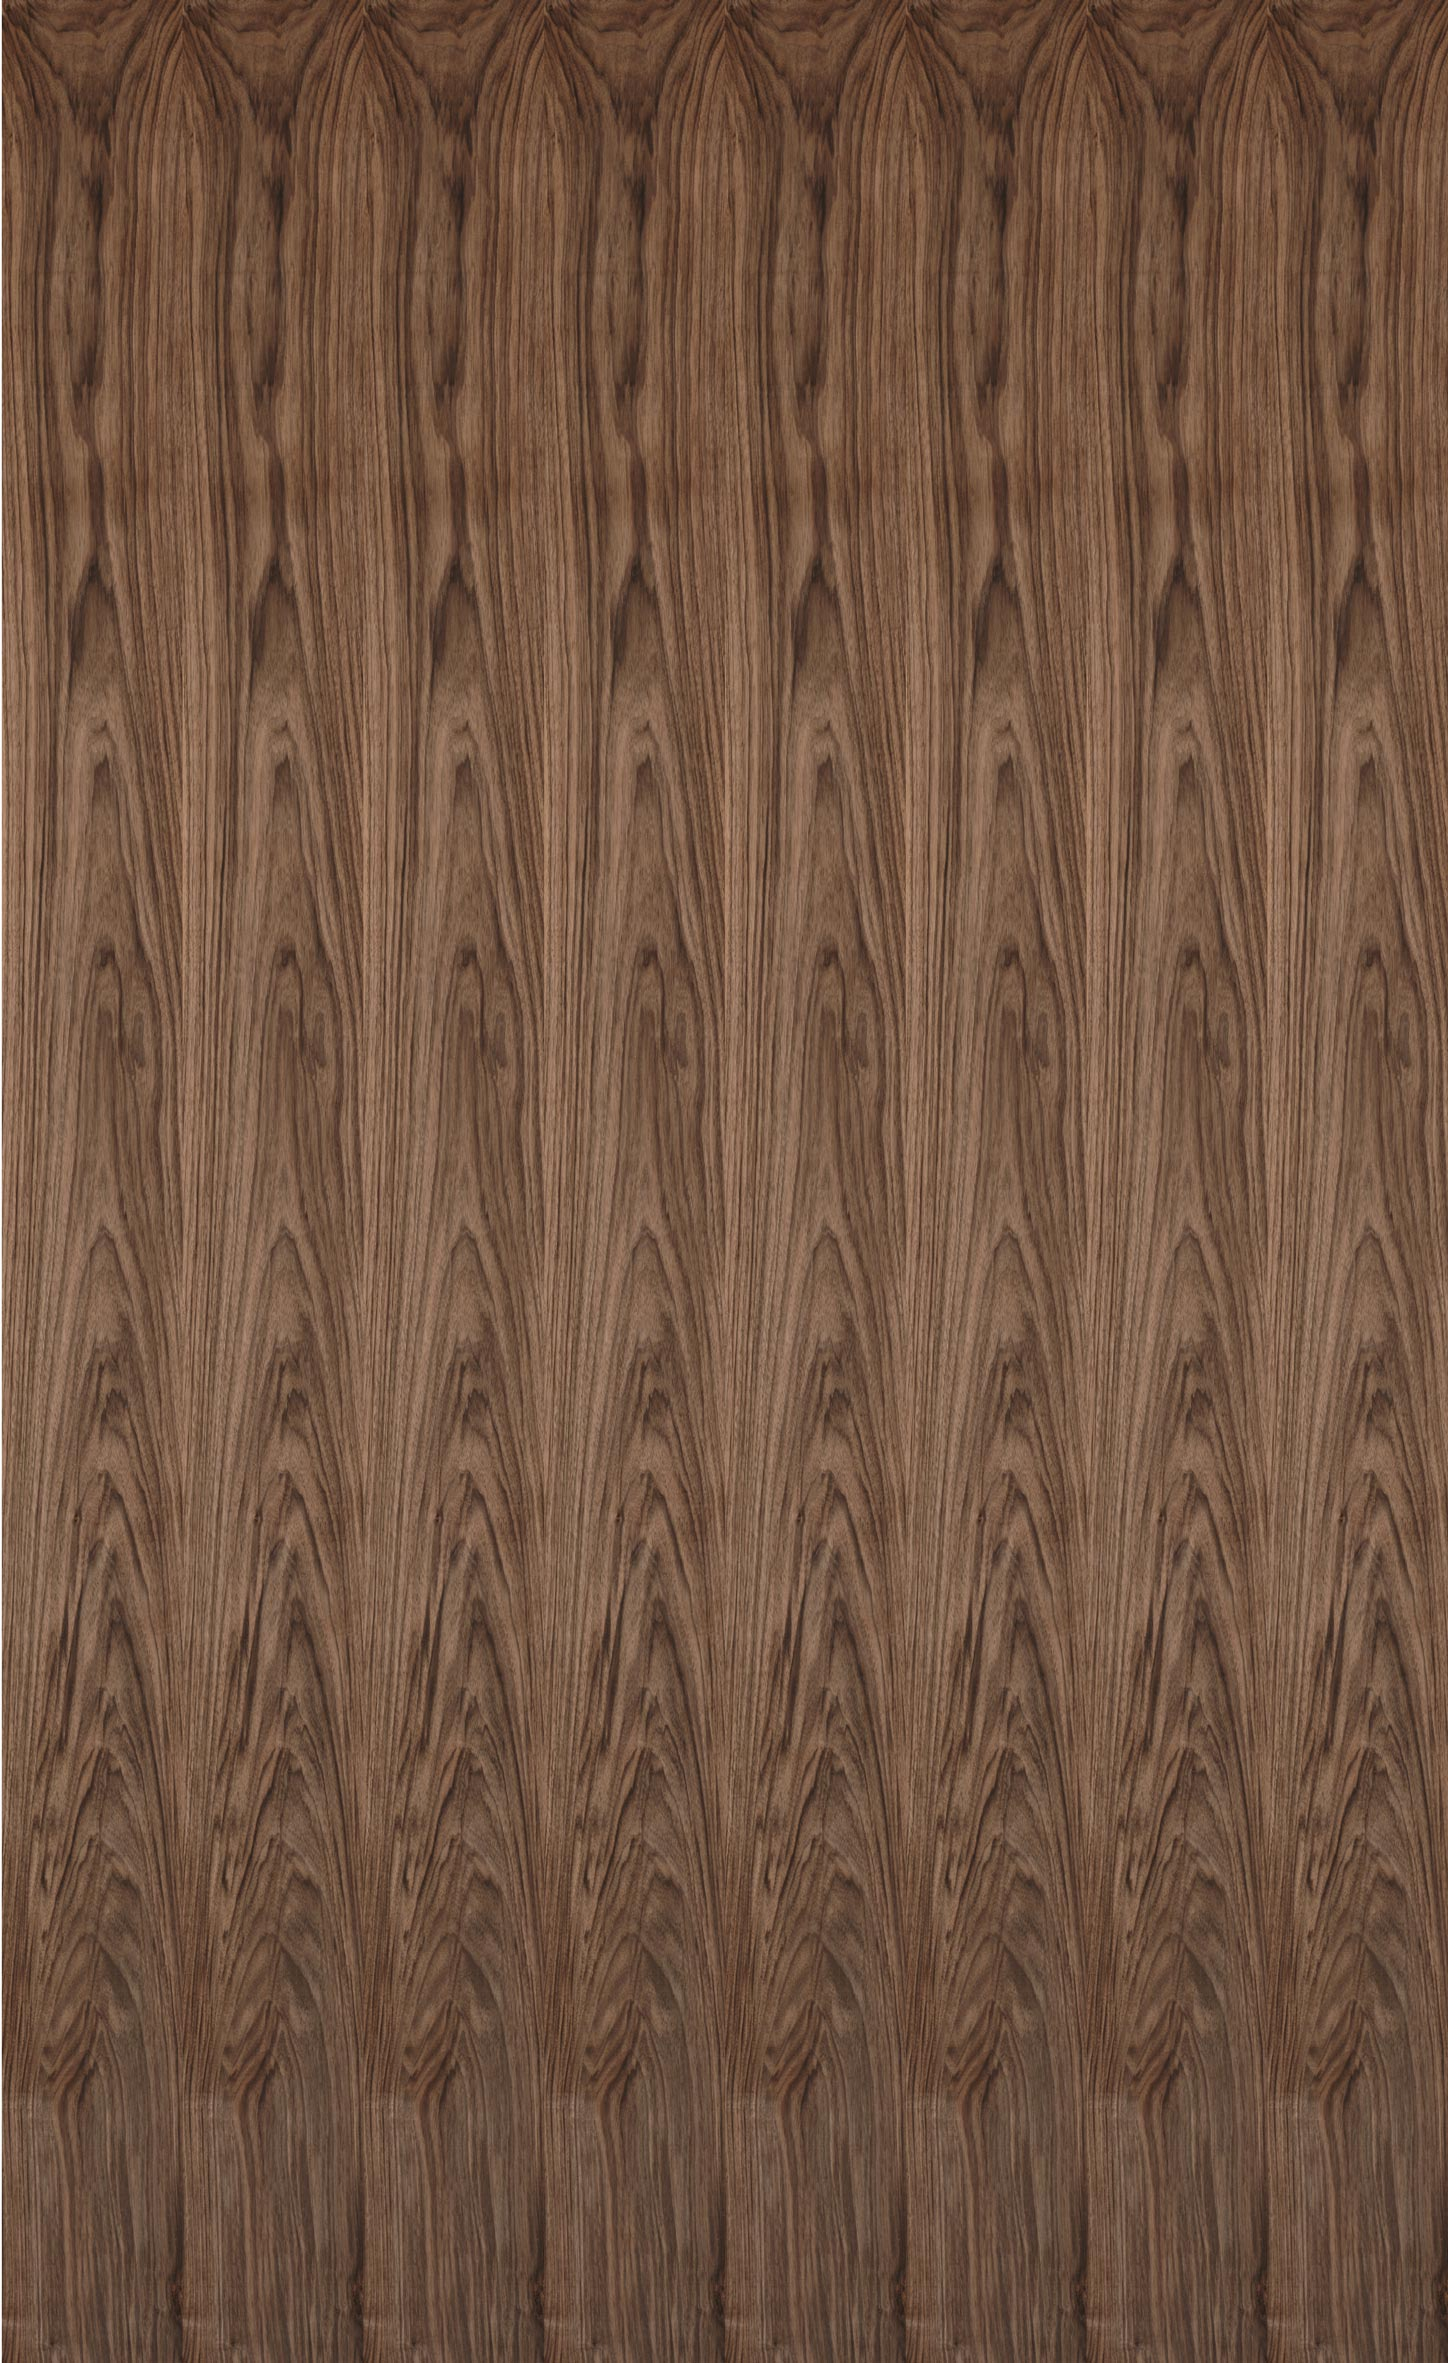 WALNUT EUROPEAN VENEER Dooge Veneers